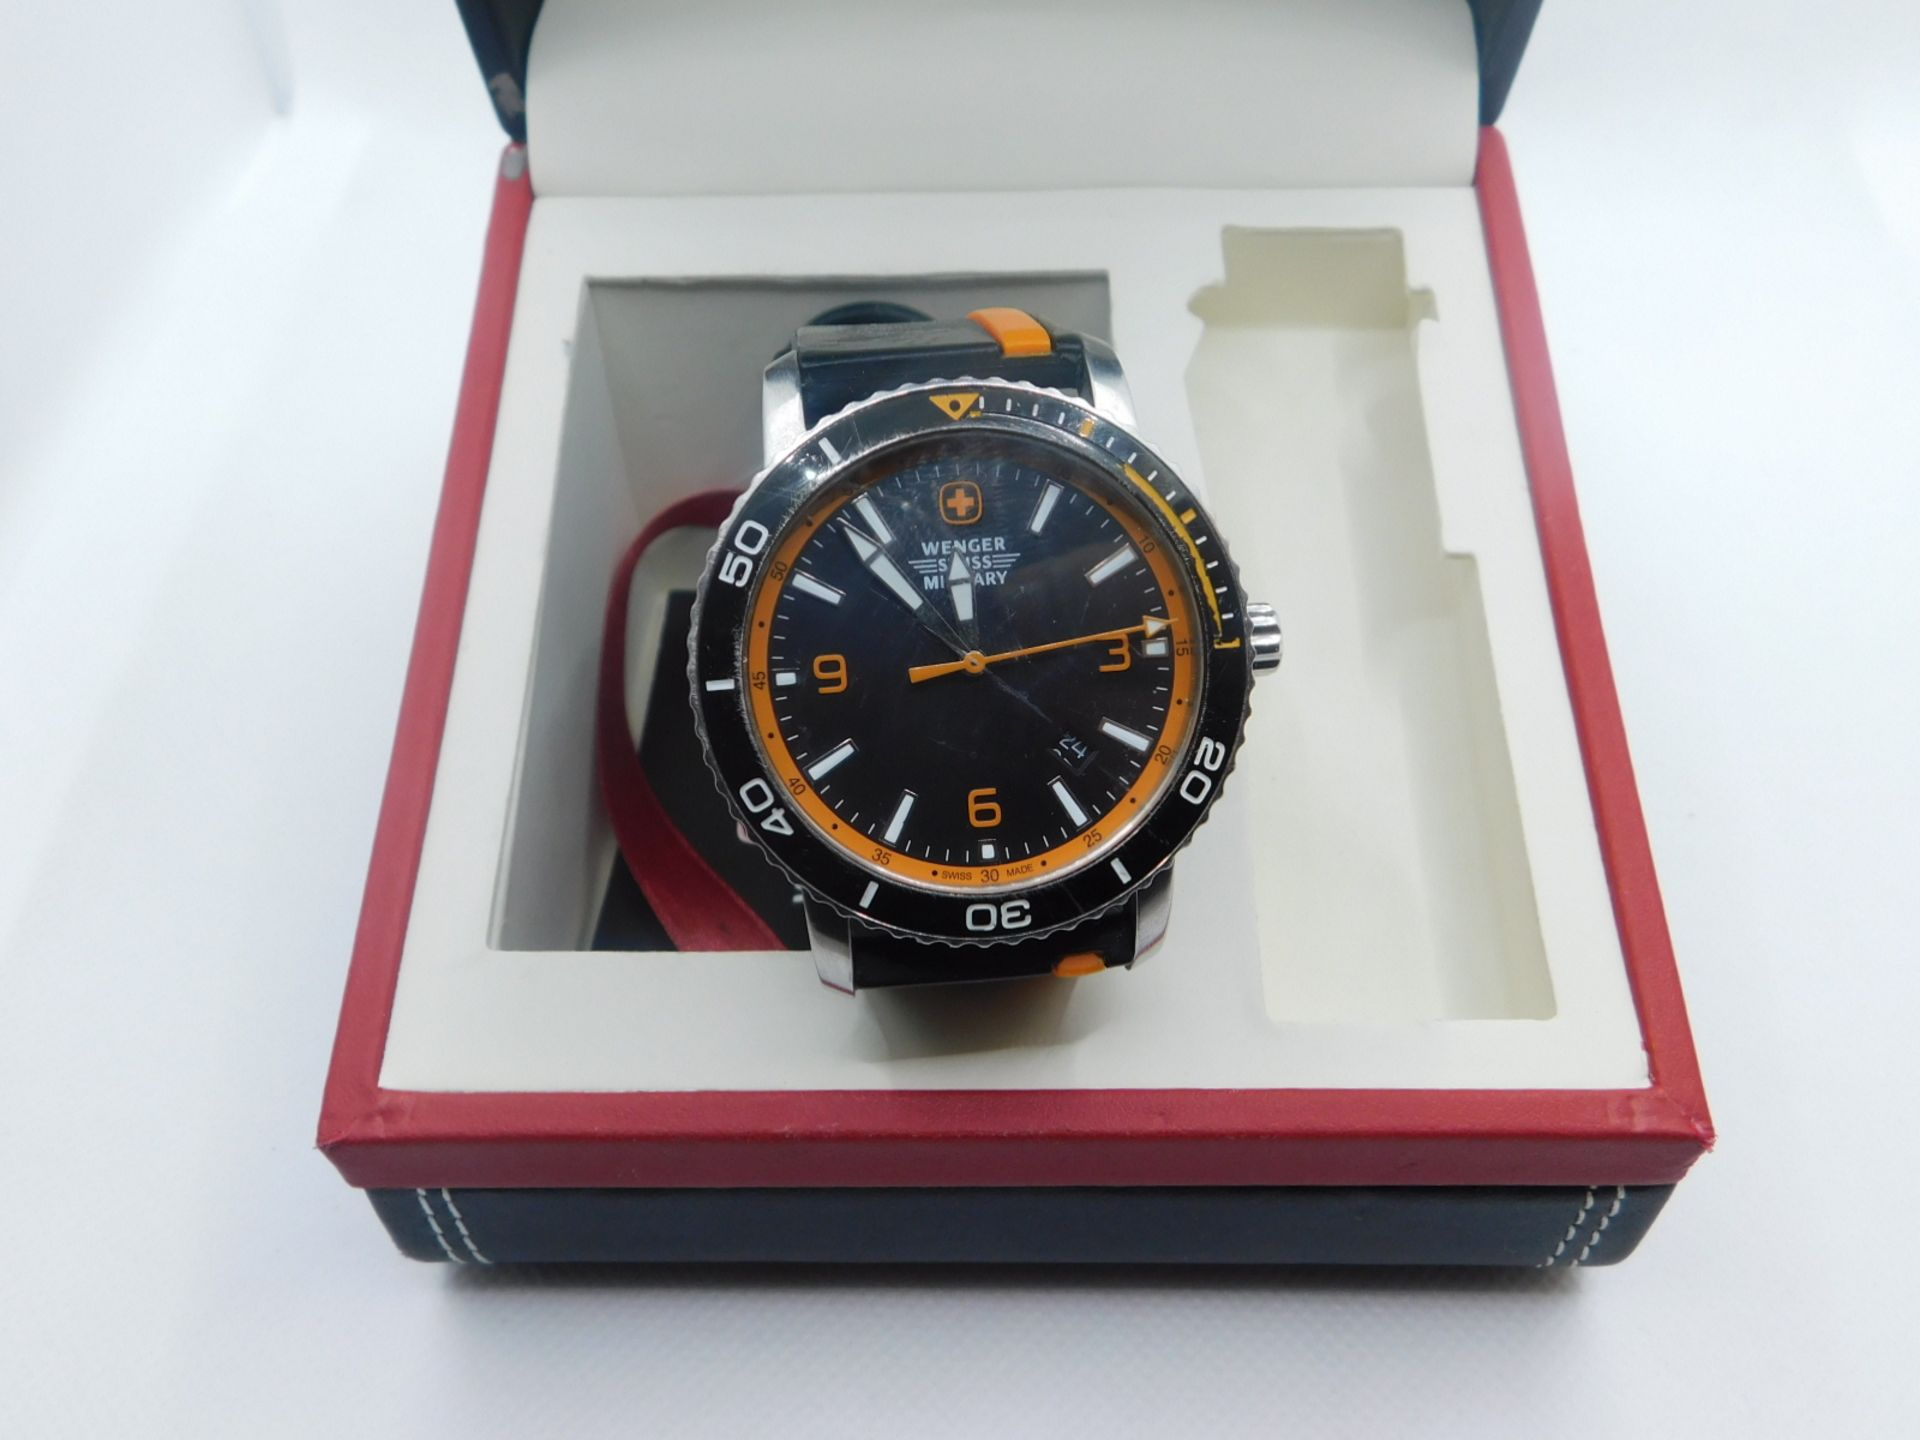 1 BOXED WENGER SWISS MILITARY MENS WATCH RRP £199